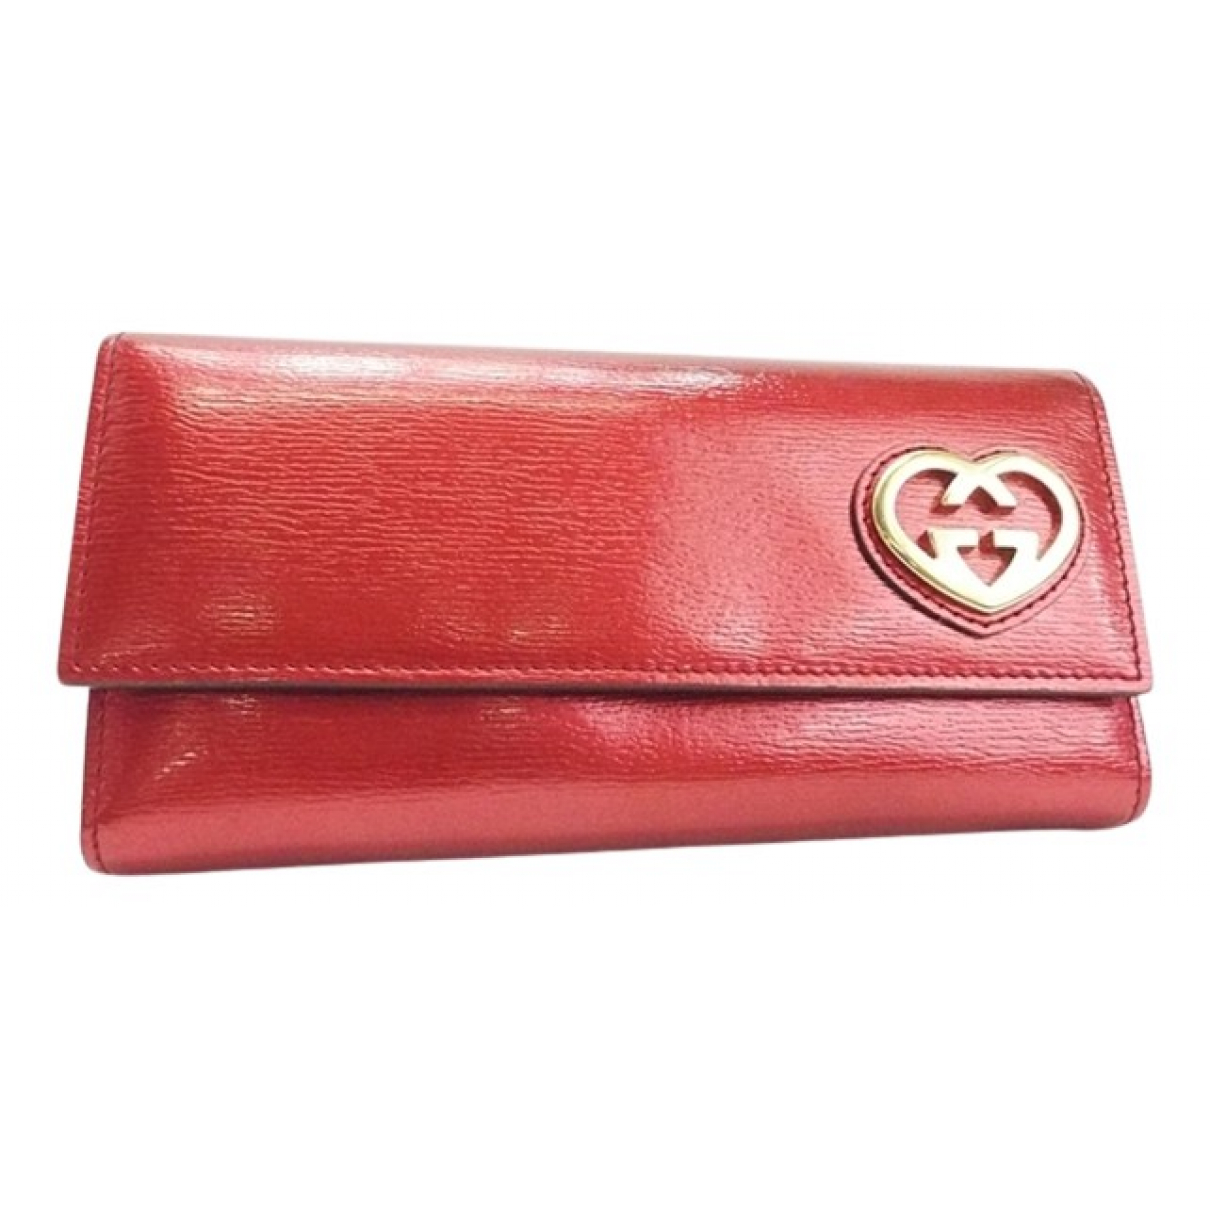 Gucci N Red Patent leather Small bag, wallet & cases for Men N